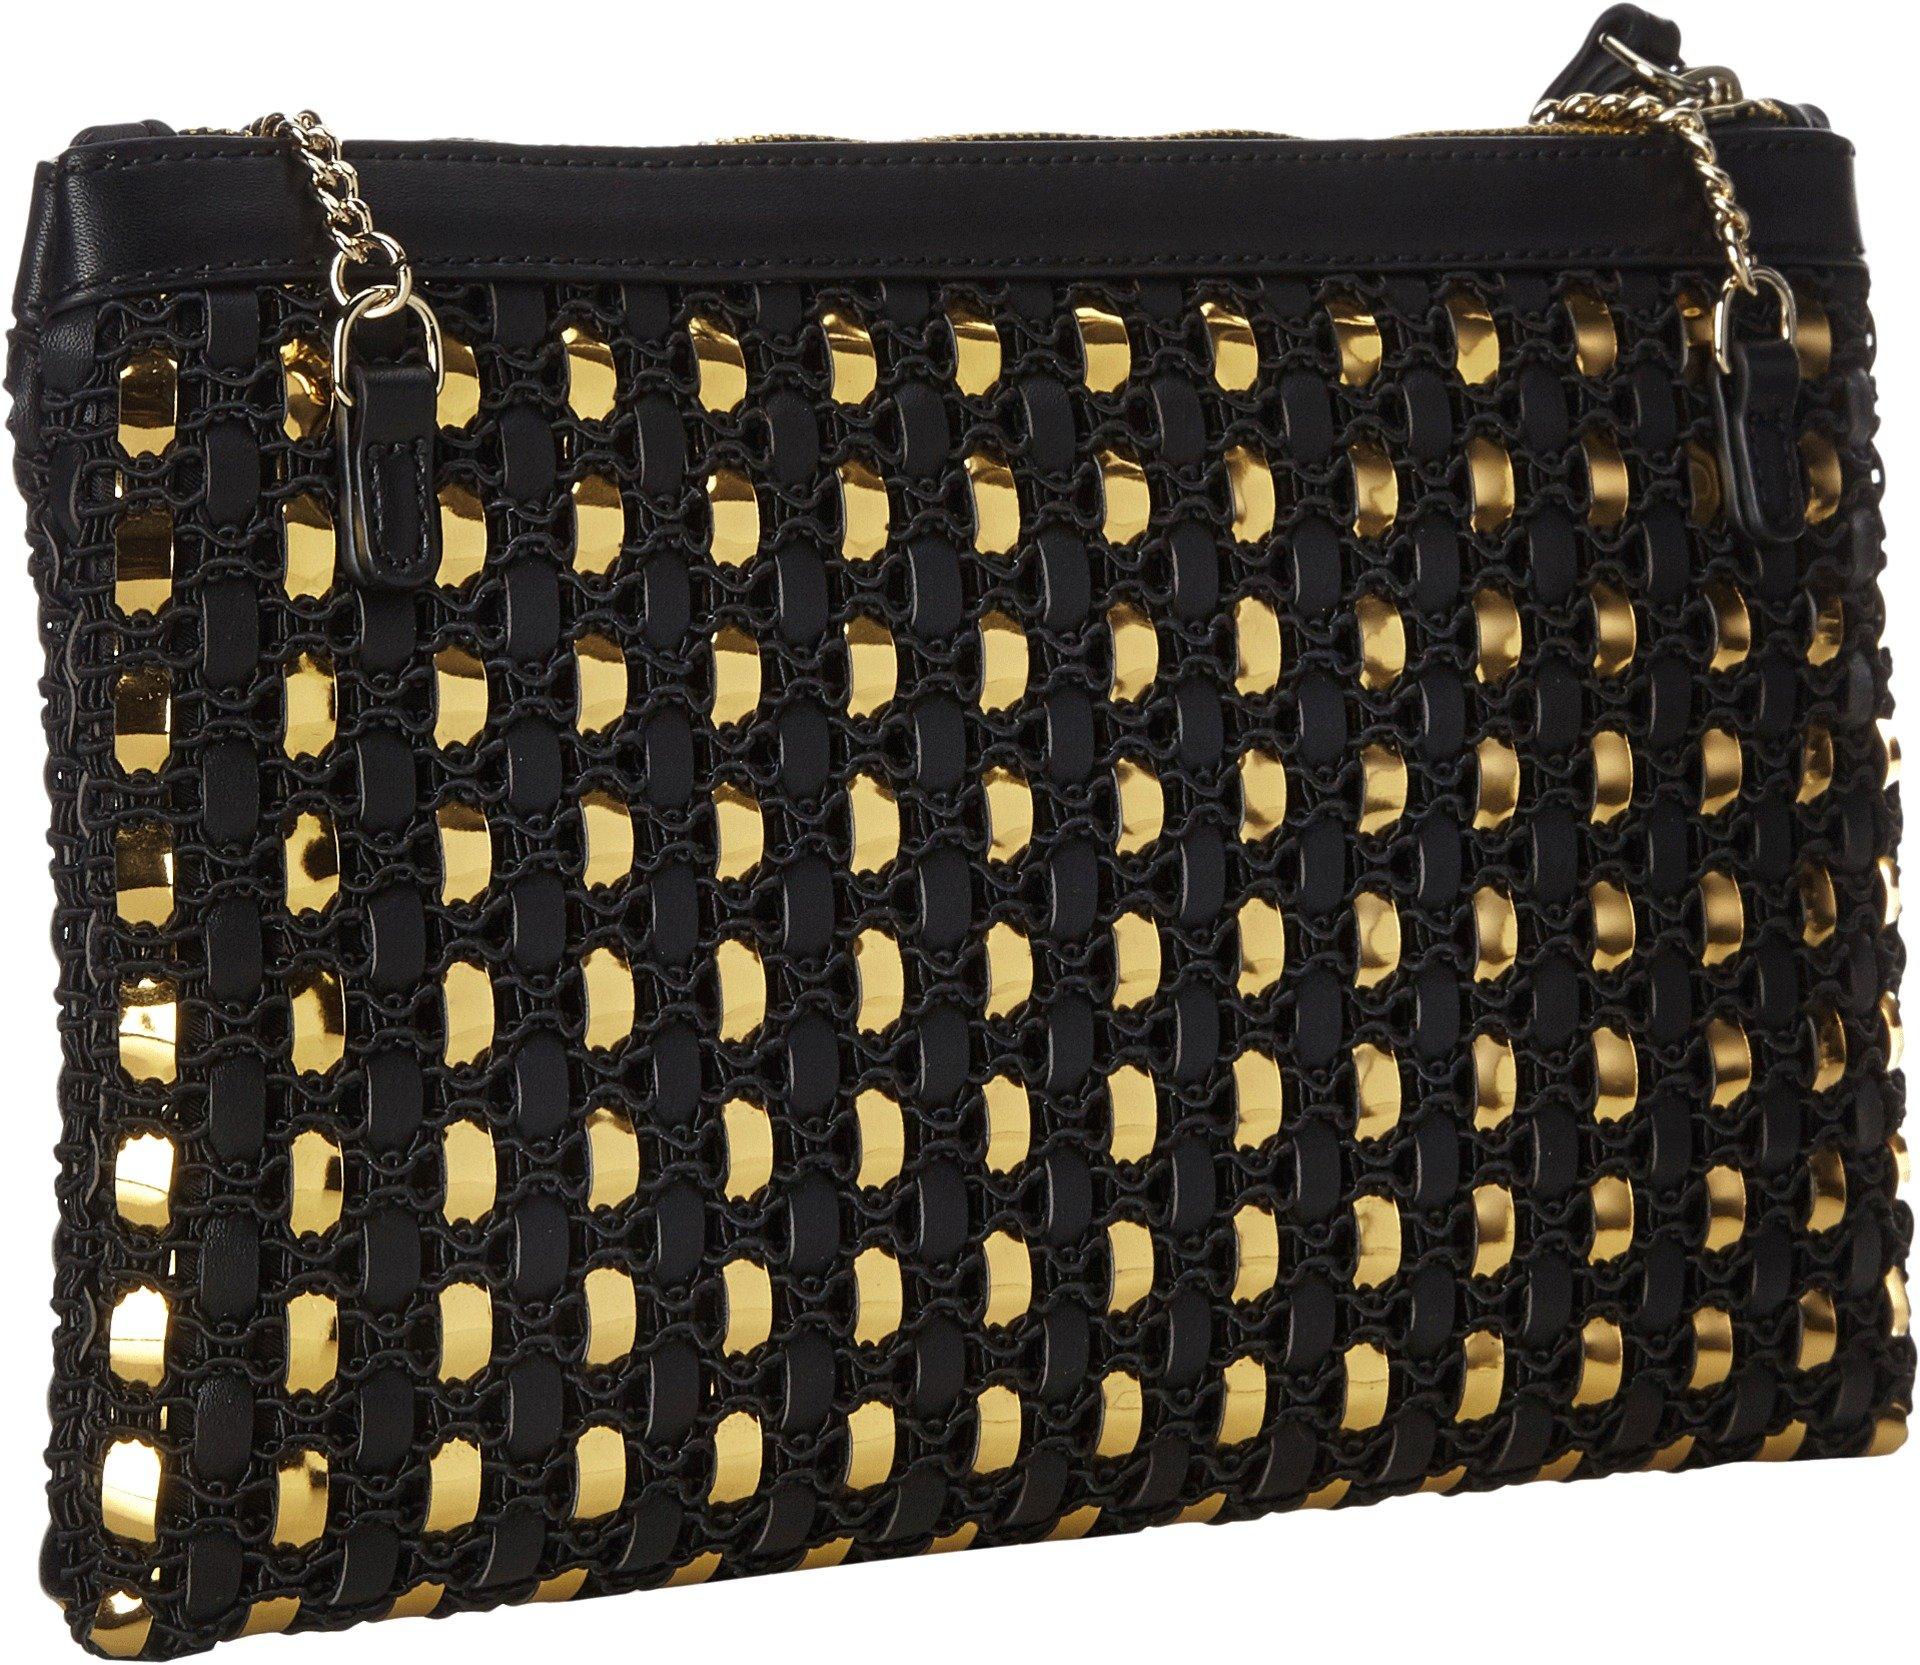 LOVE Moschino Women's Crossbody Chain Strap Fantasy Black One Size by Love Moschino (Image #2)